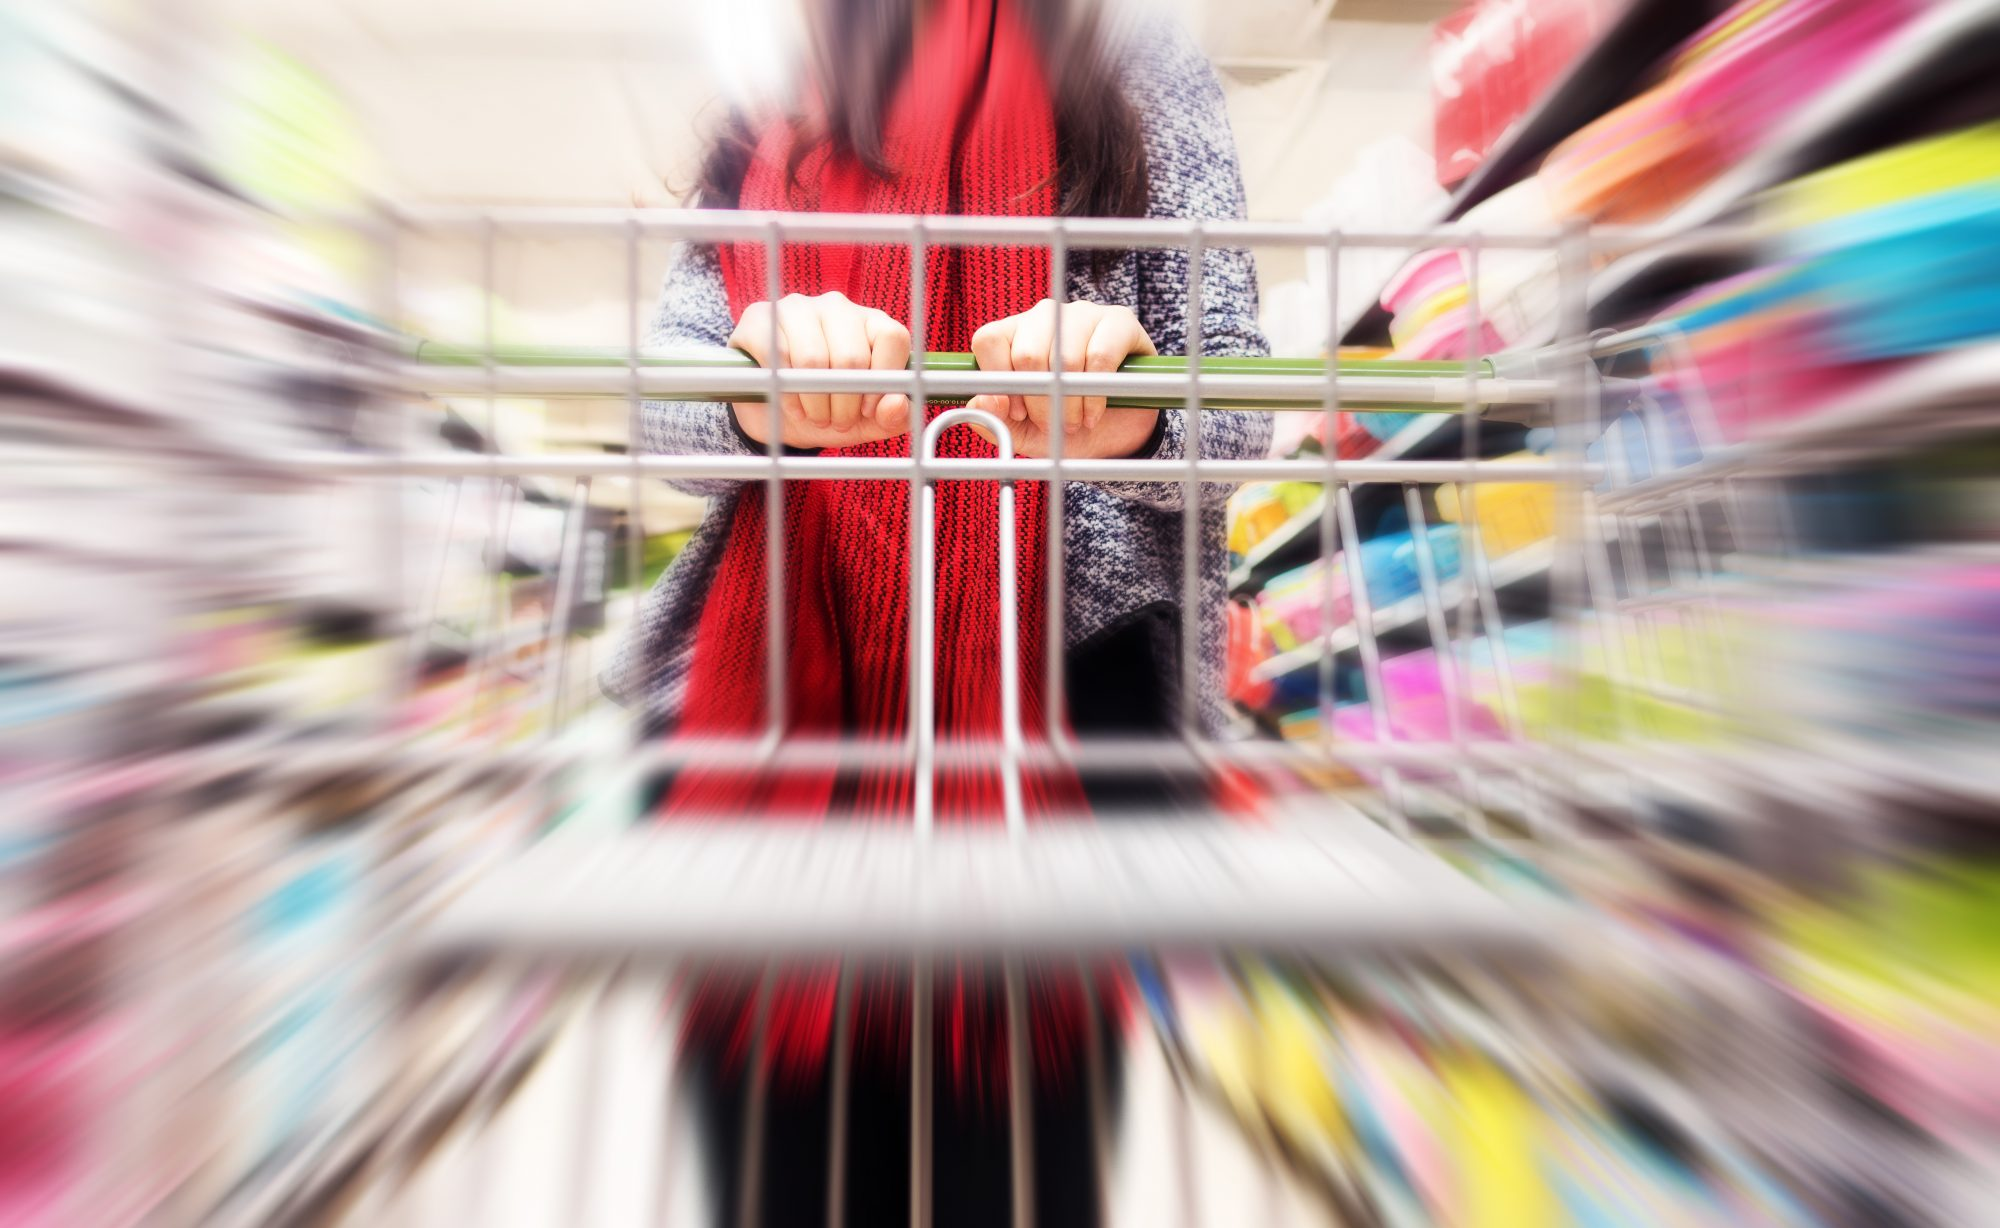 shopping-cart-498013548.jpg